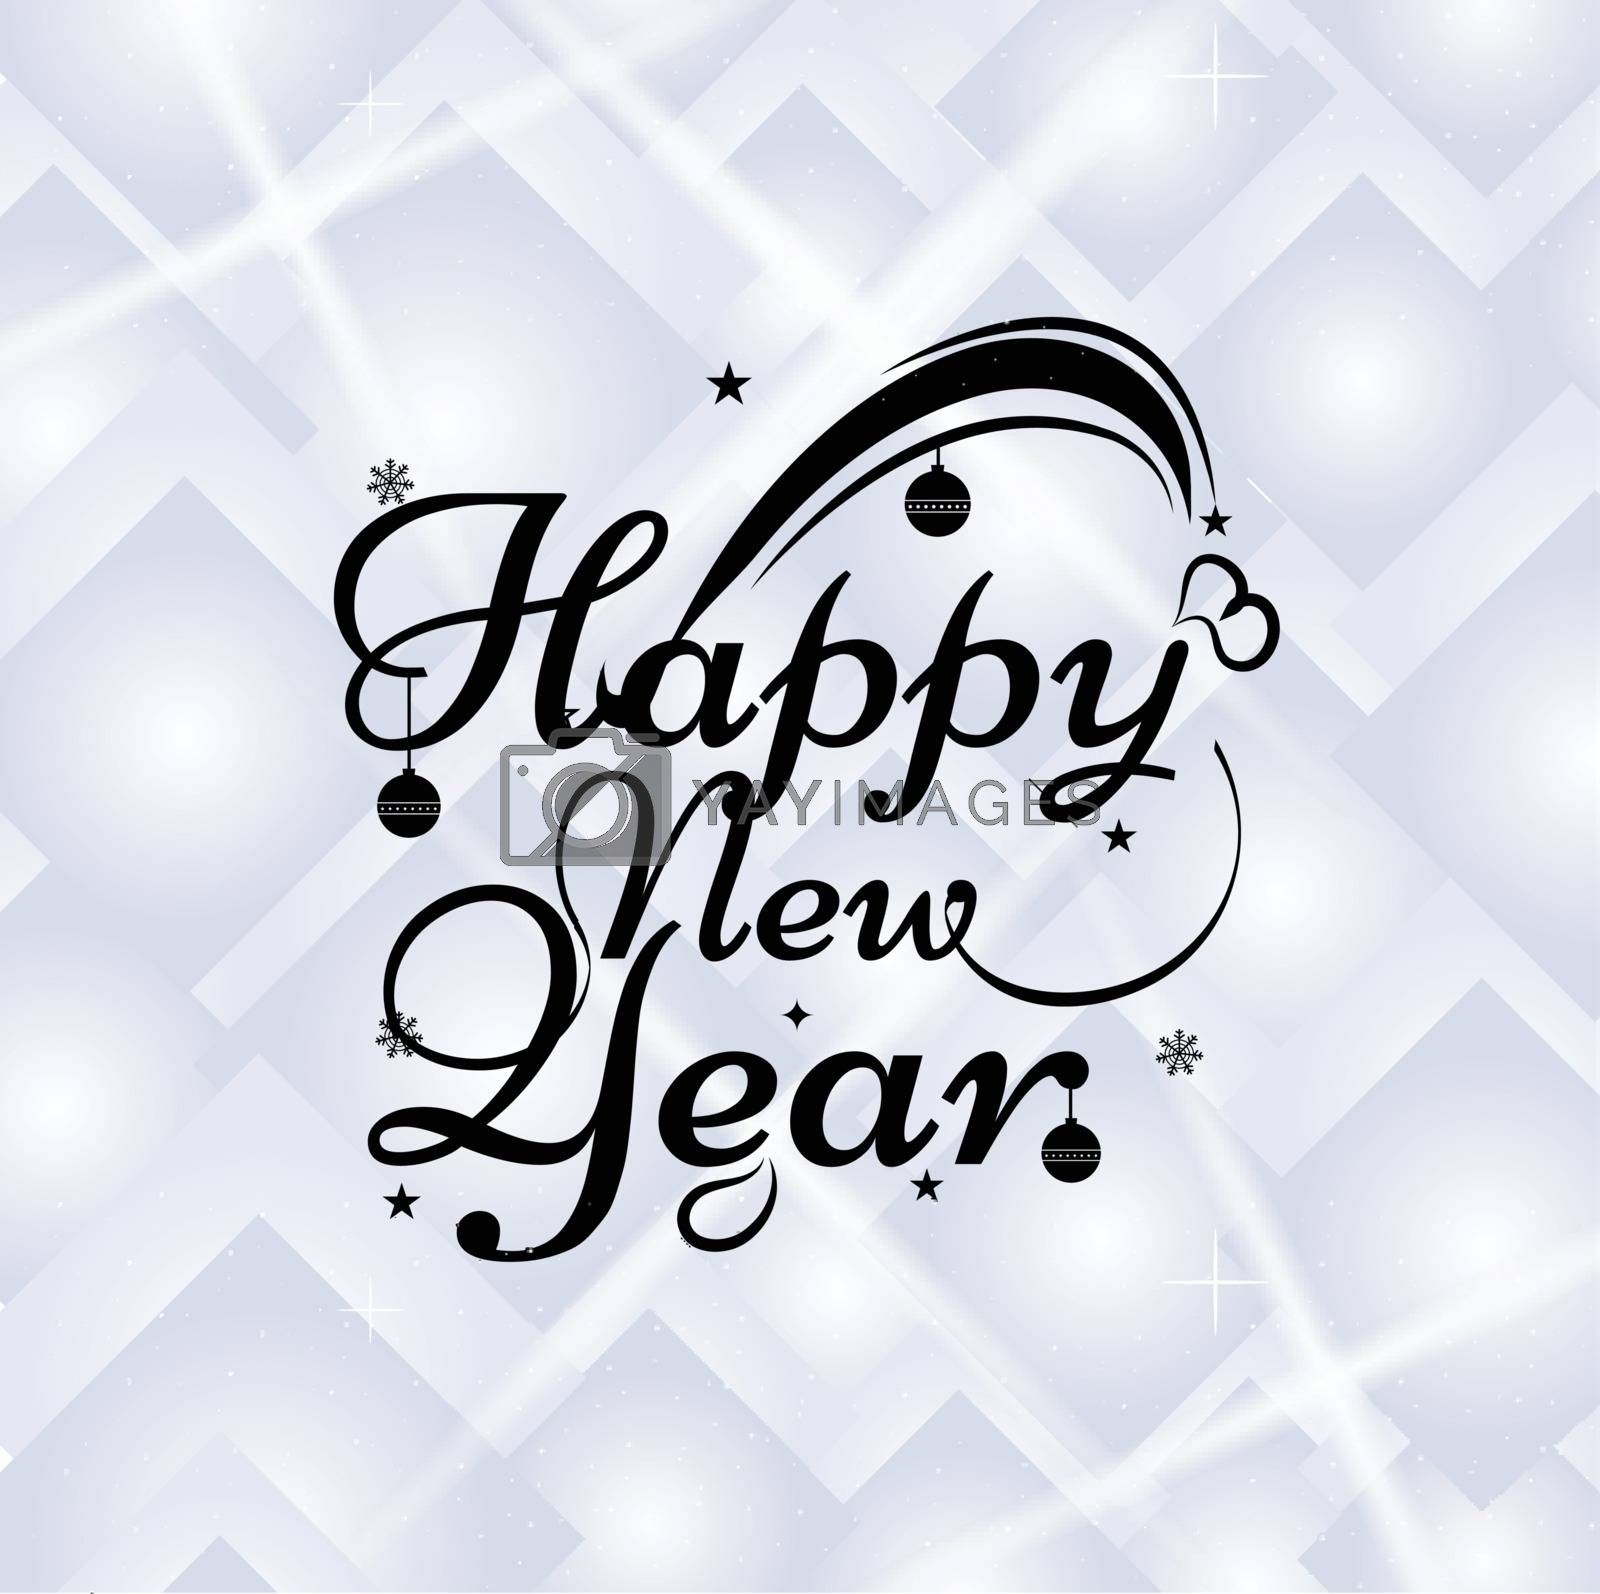 Calligraphy of Happy New Year decorated stars and baubles on shiny abstract background.